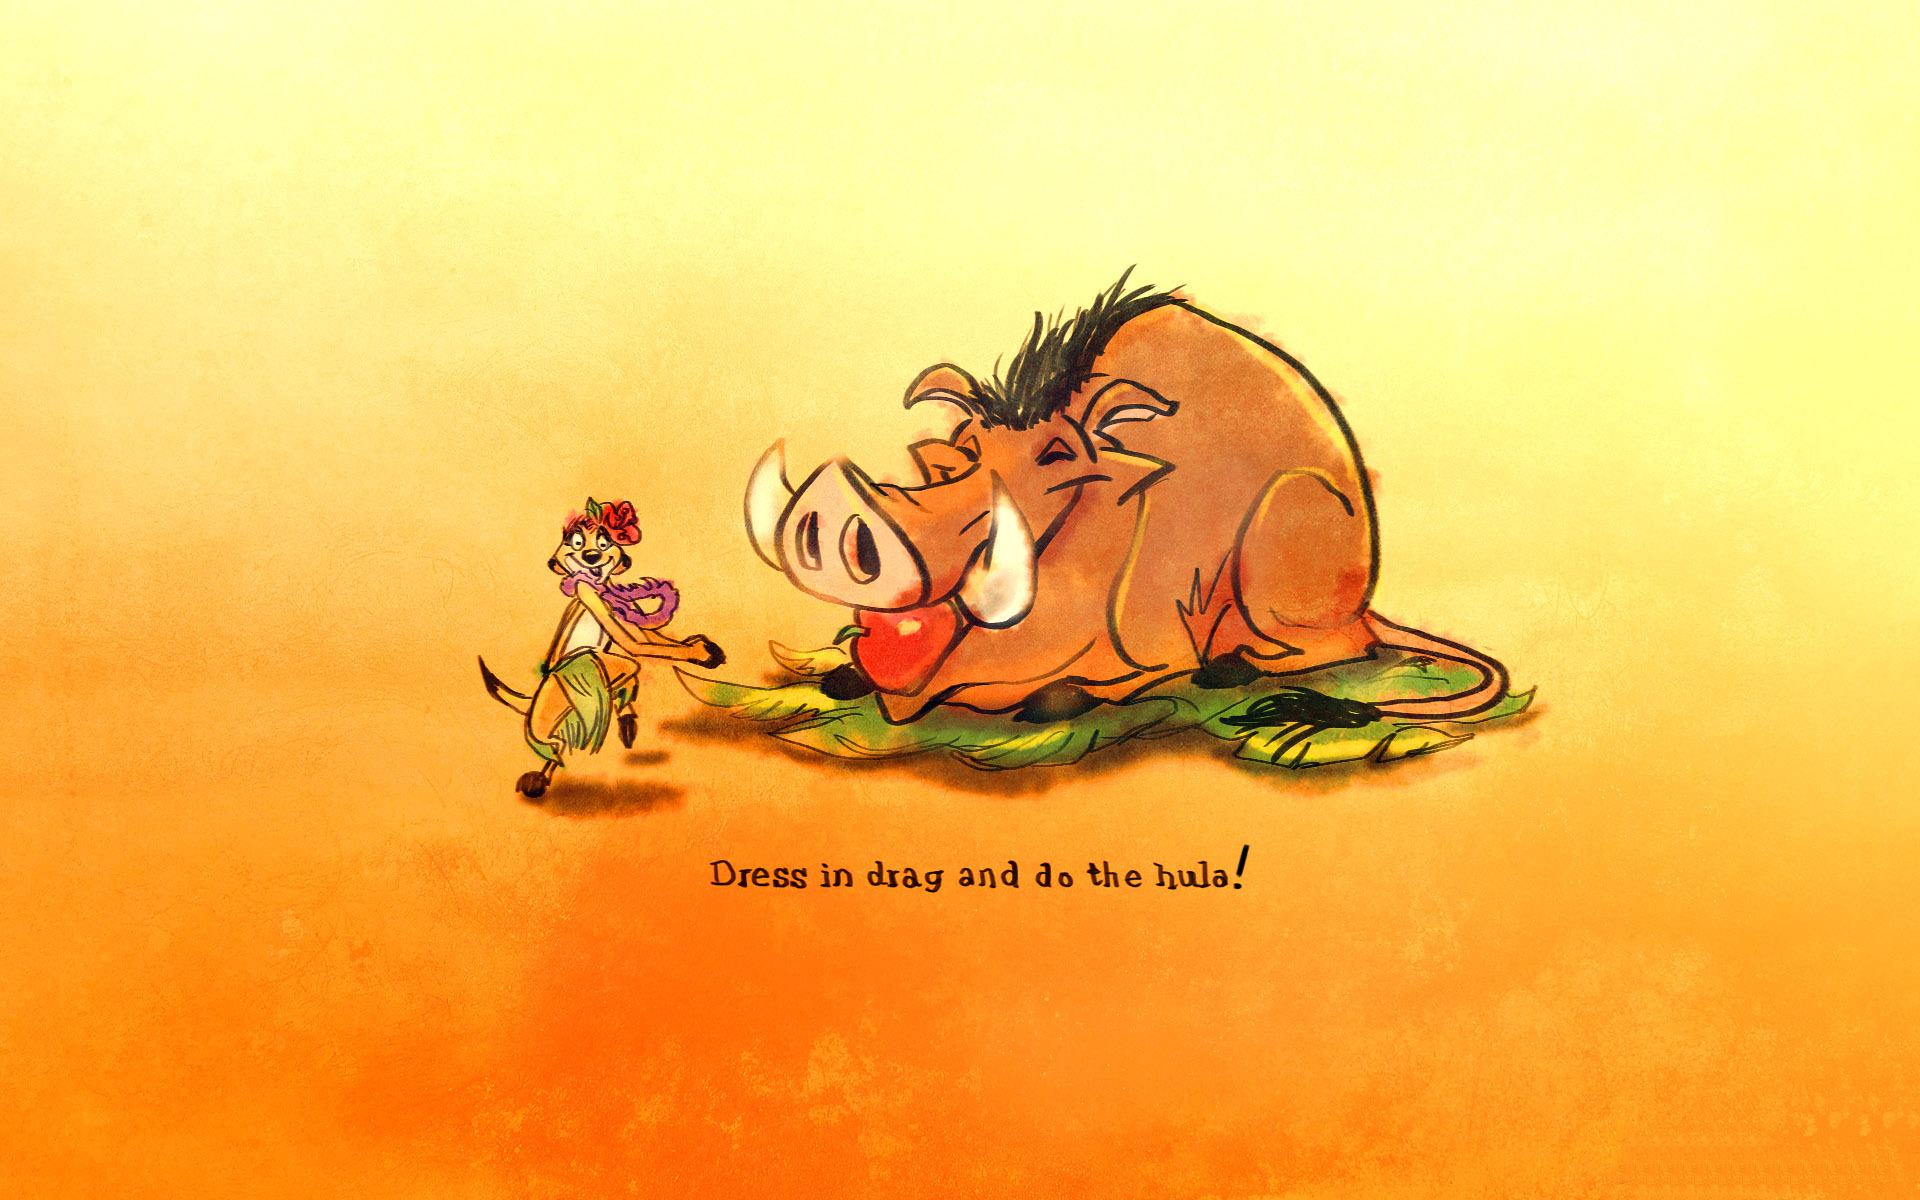 1920 x 1200 - 406k - jpg 88 The Lion King ...